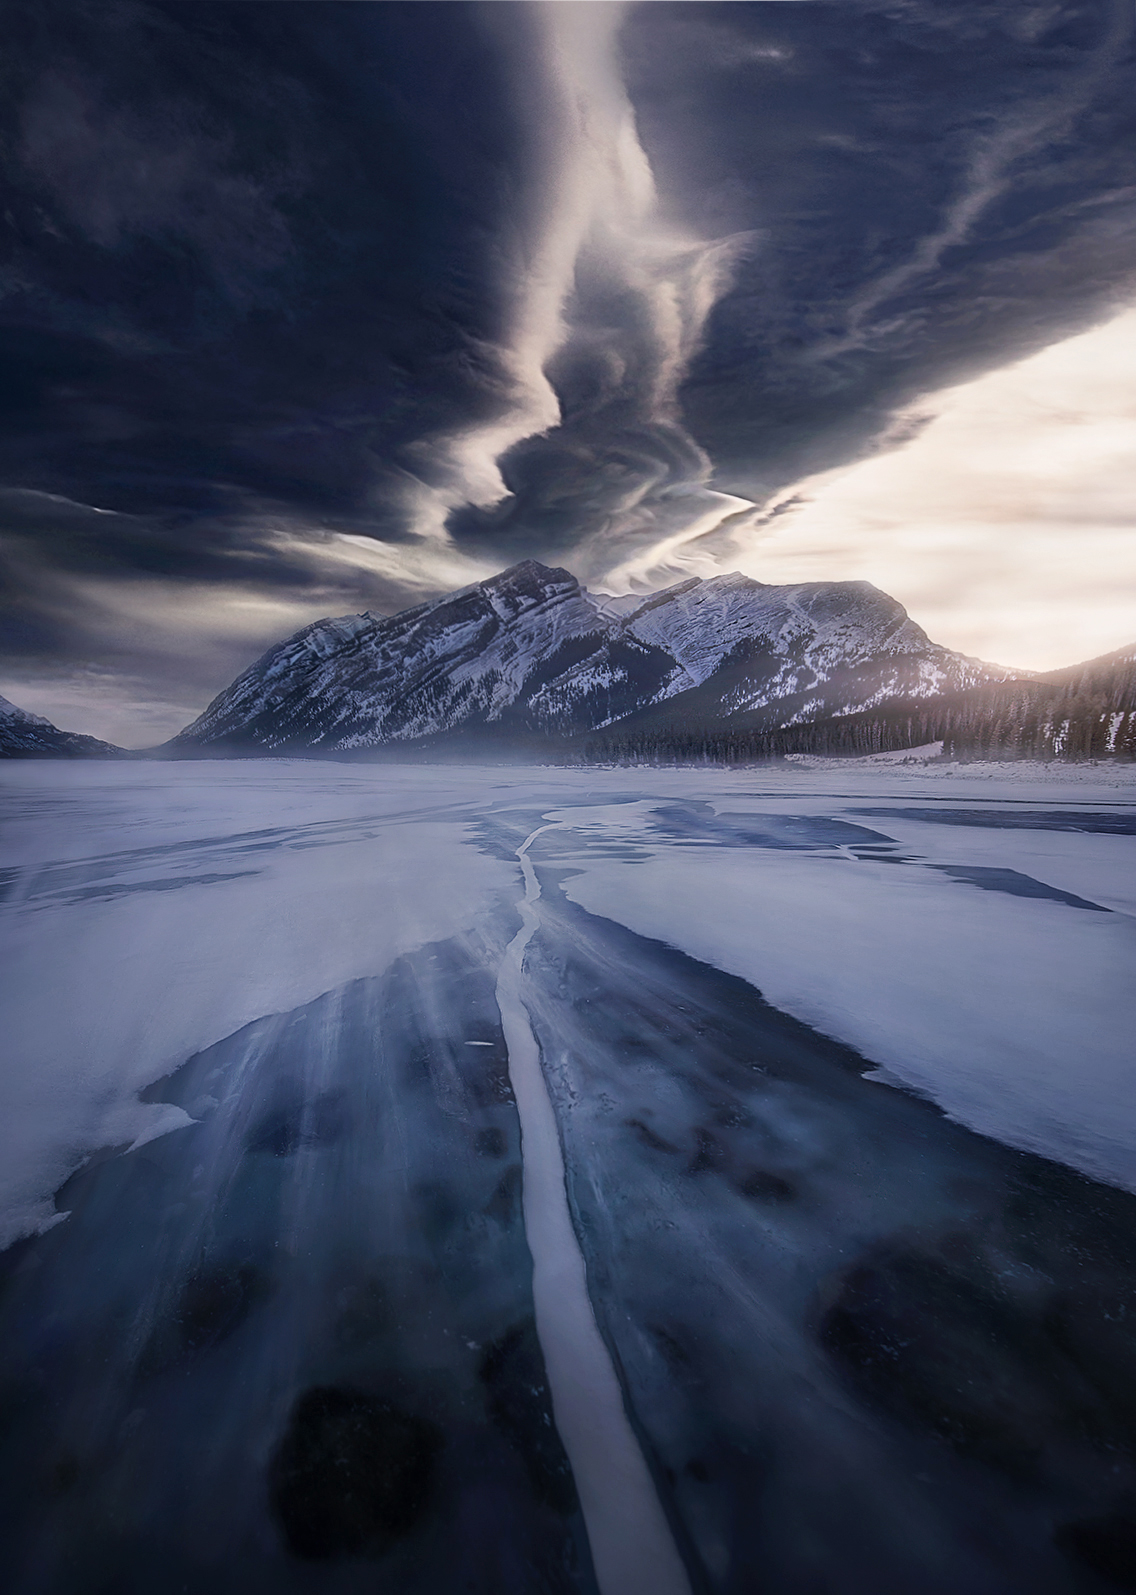 Blowing snow over ice and wild shapes in the sky formed by a lenticular wave cloud align for a cold and dramatic scene.